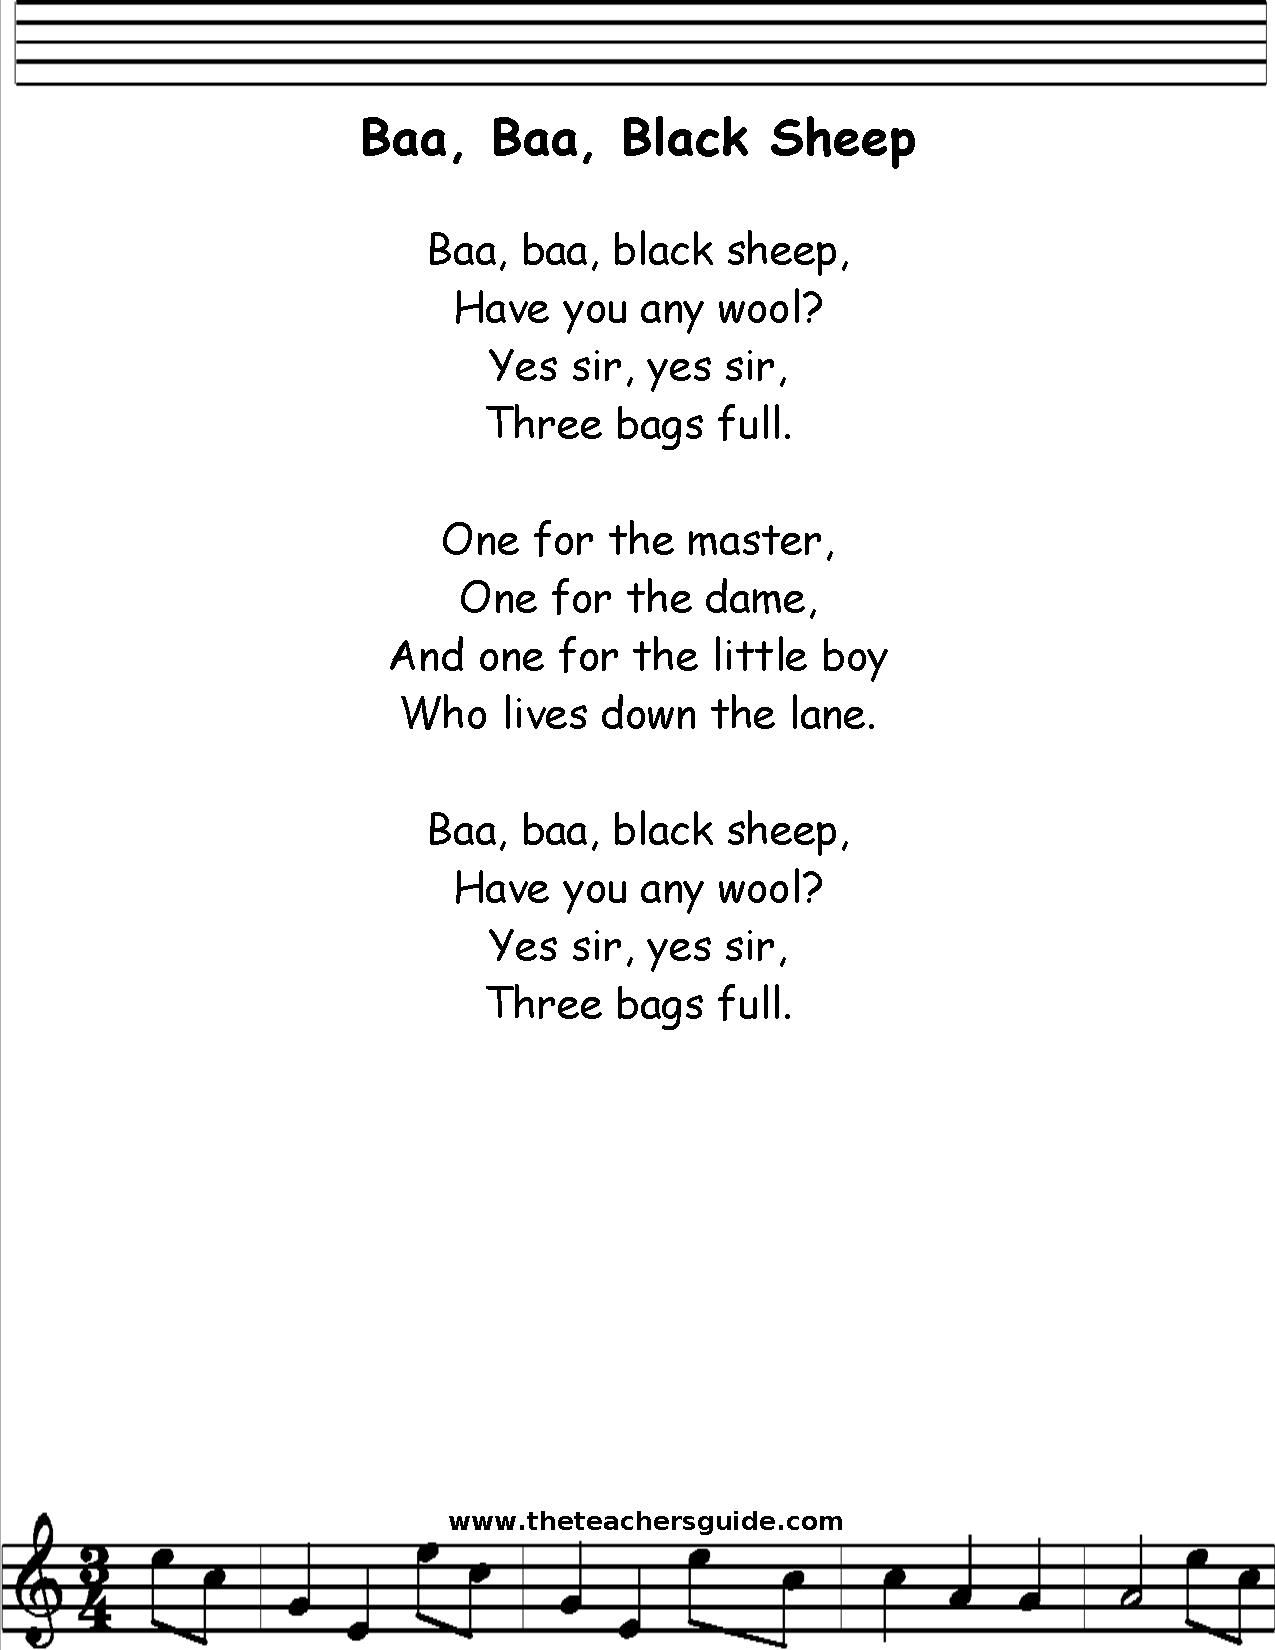 Baa Black Sheep Lyrics Printout